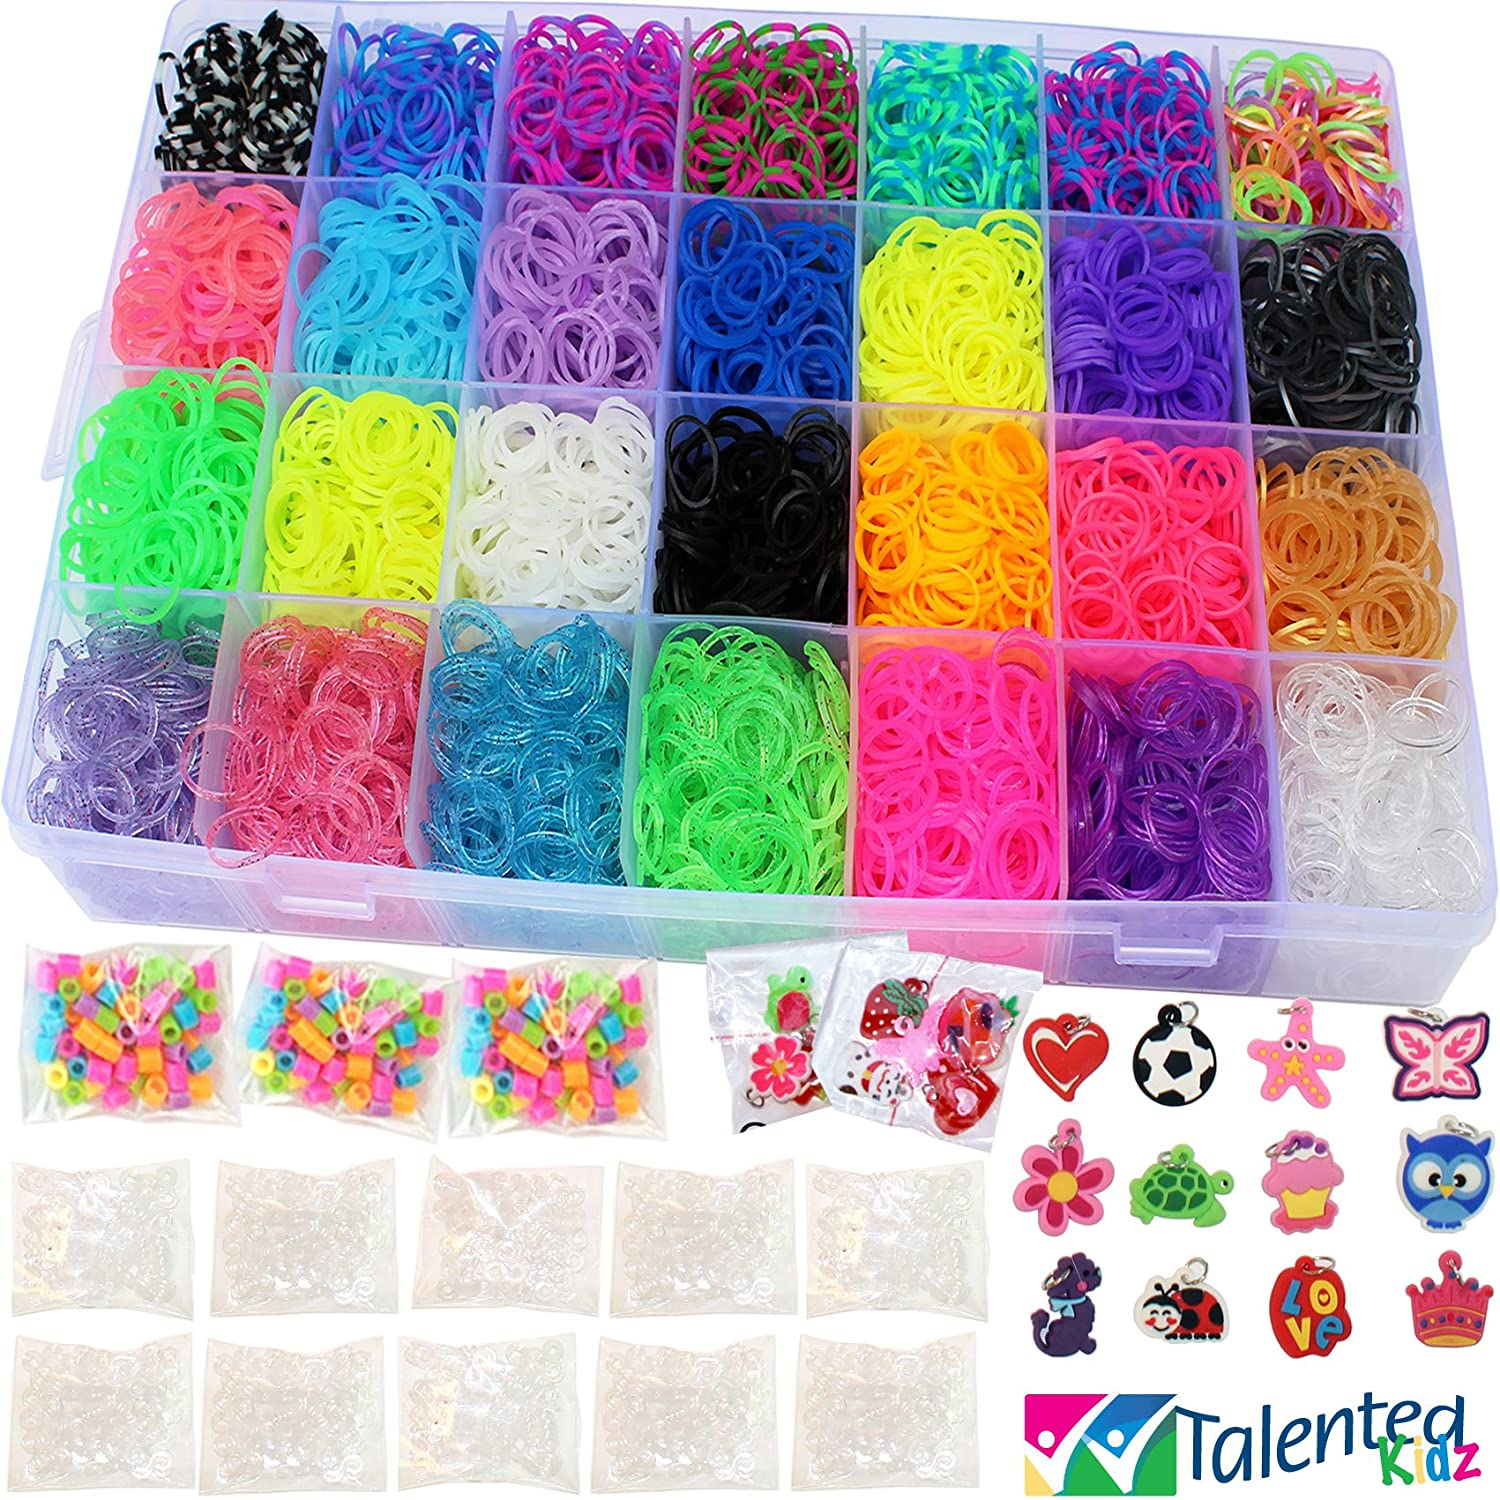 9100 Premium Quality Bundle, Talented Kidz Rainbow Rubber Bands Refill Storage Organizer Loom 8500 Bands in 28 Colors 12 Charms 500 Clips & 100 Beads Case With Lid Included This Is The Authentic Mega Box Organizer Loom